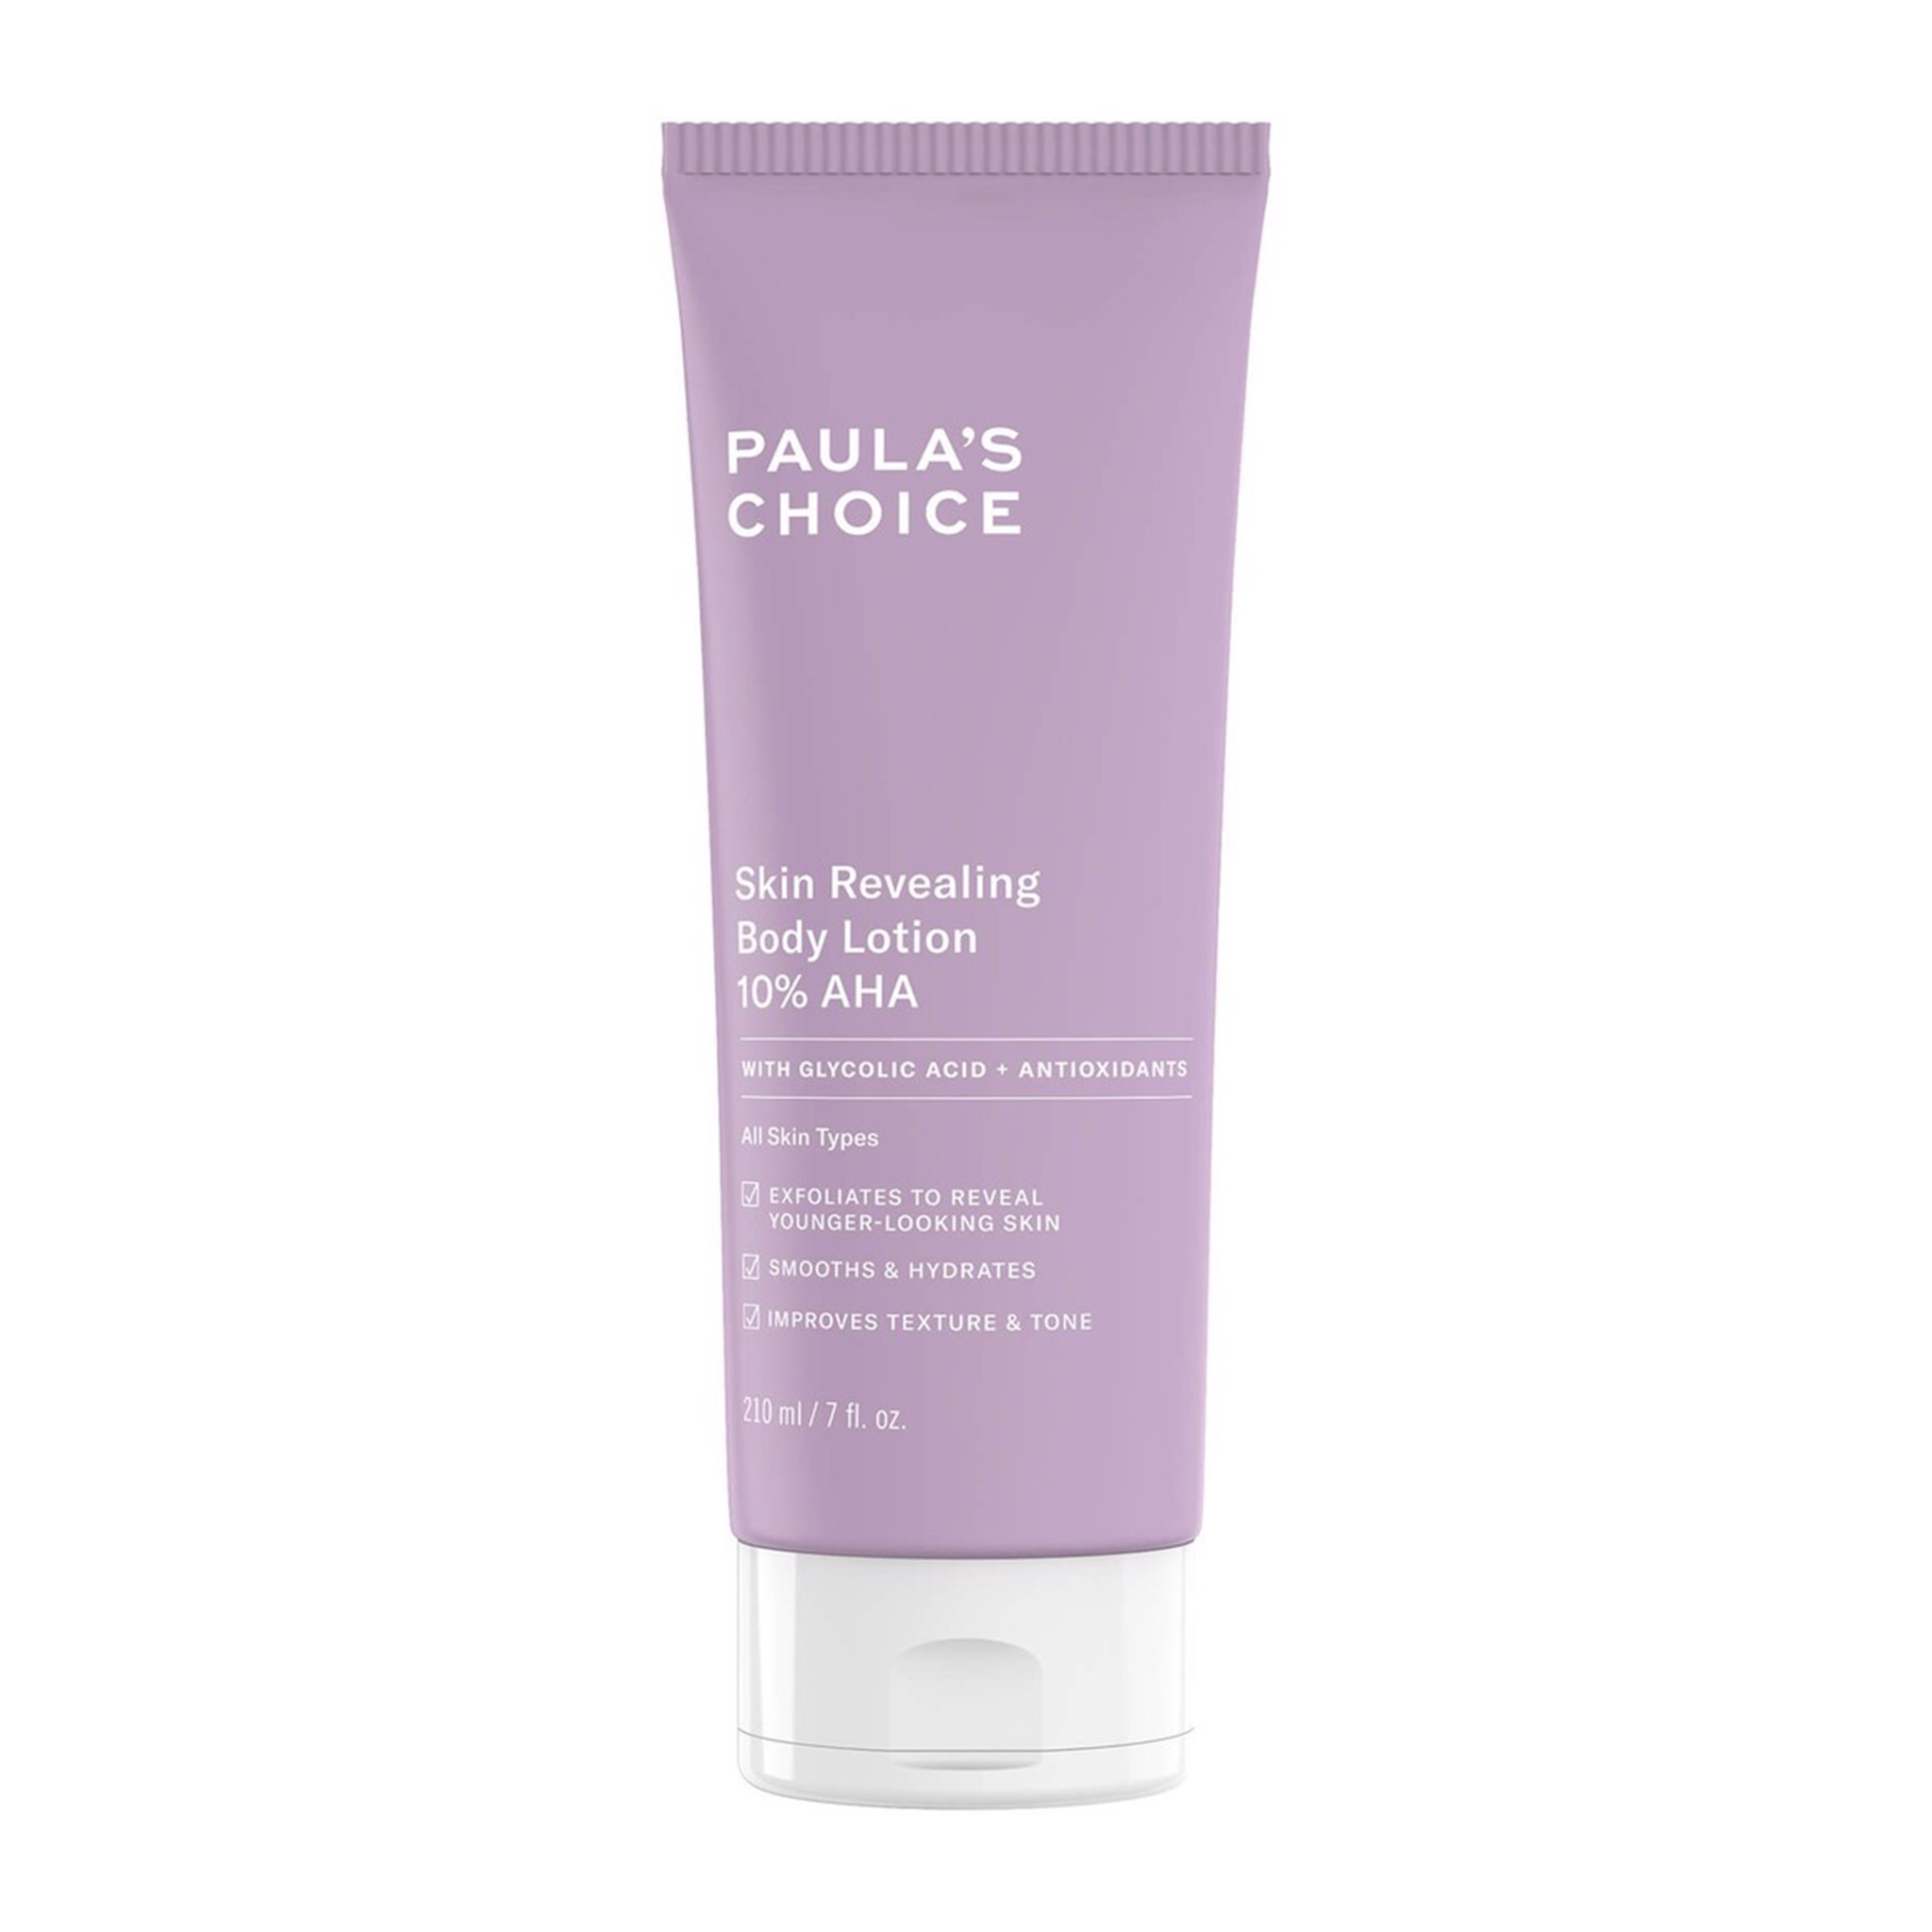 Body lotion tẩy da chết PAULA'S CHOICE Skin Revealing Body Lotion with 10% AHA (210ml)